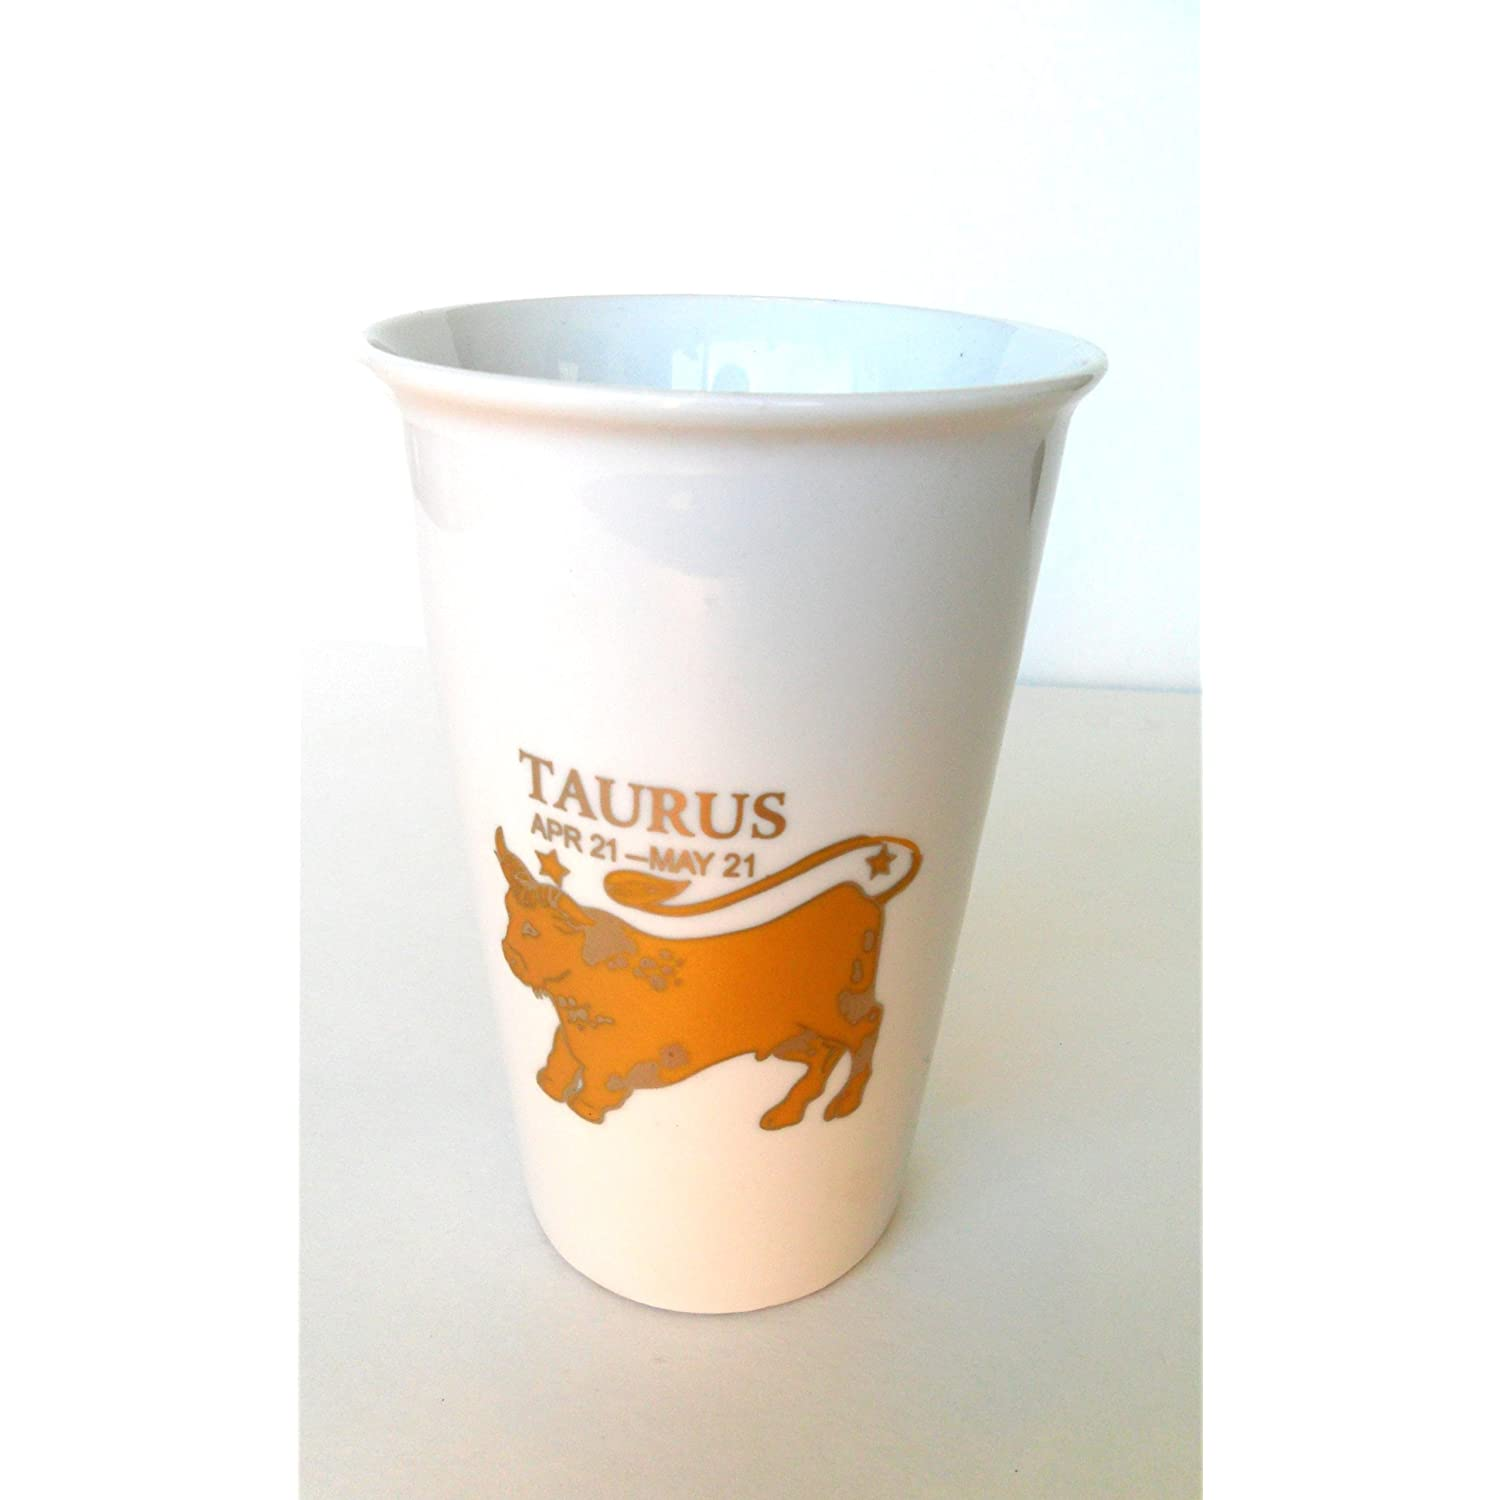 Birthday Gift of Zodiac Sign Taurus Embossed in Gold Travel Coffee Tea Mug Ceramic 15oz